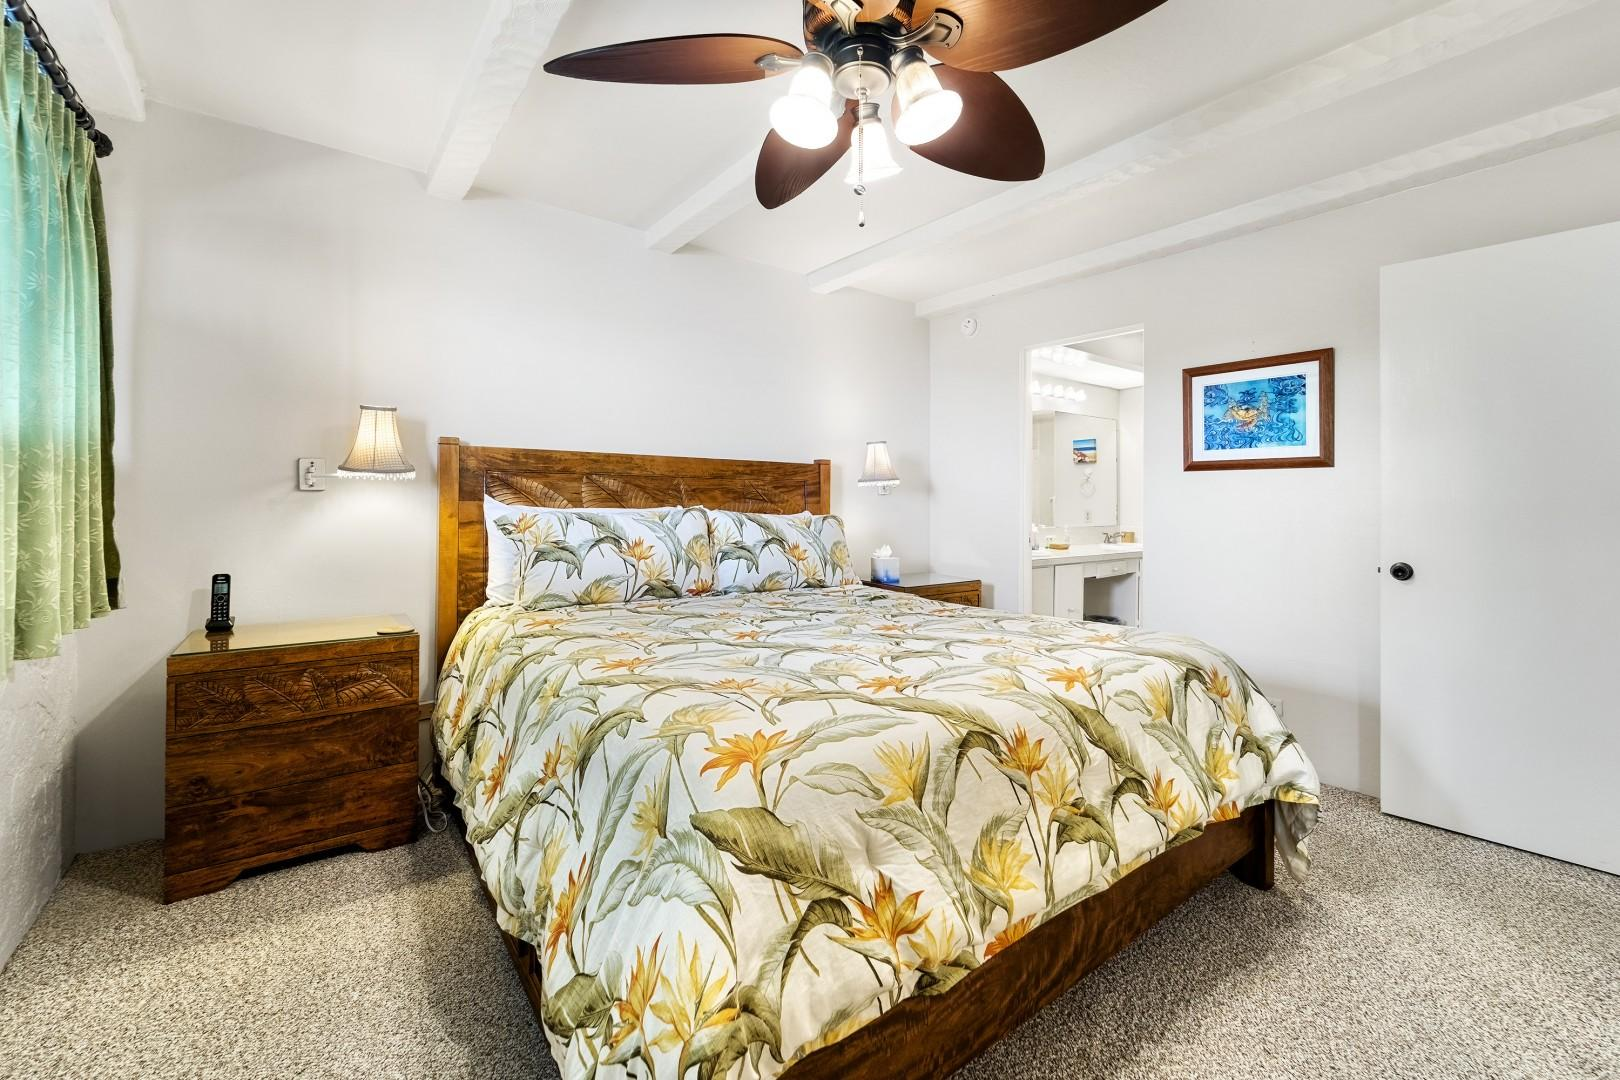 Central A/C, upgraded furnishings and attached ensuite in the Master bedroom